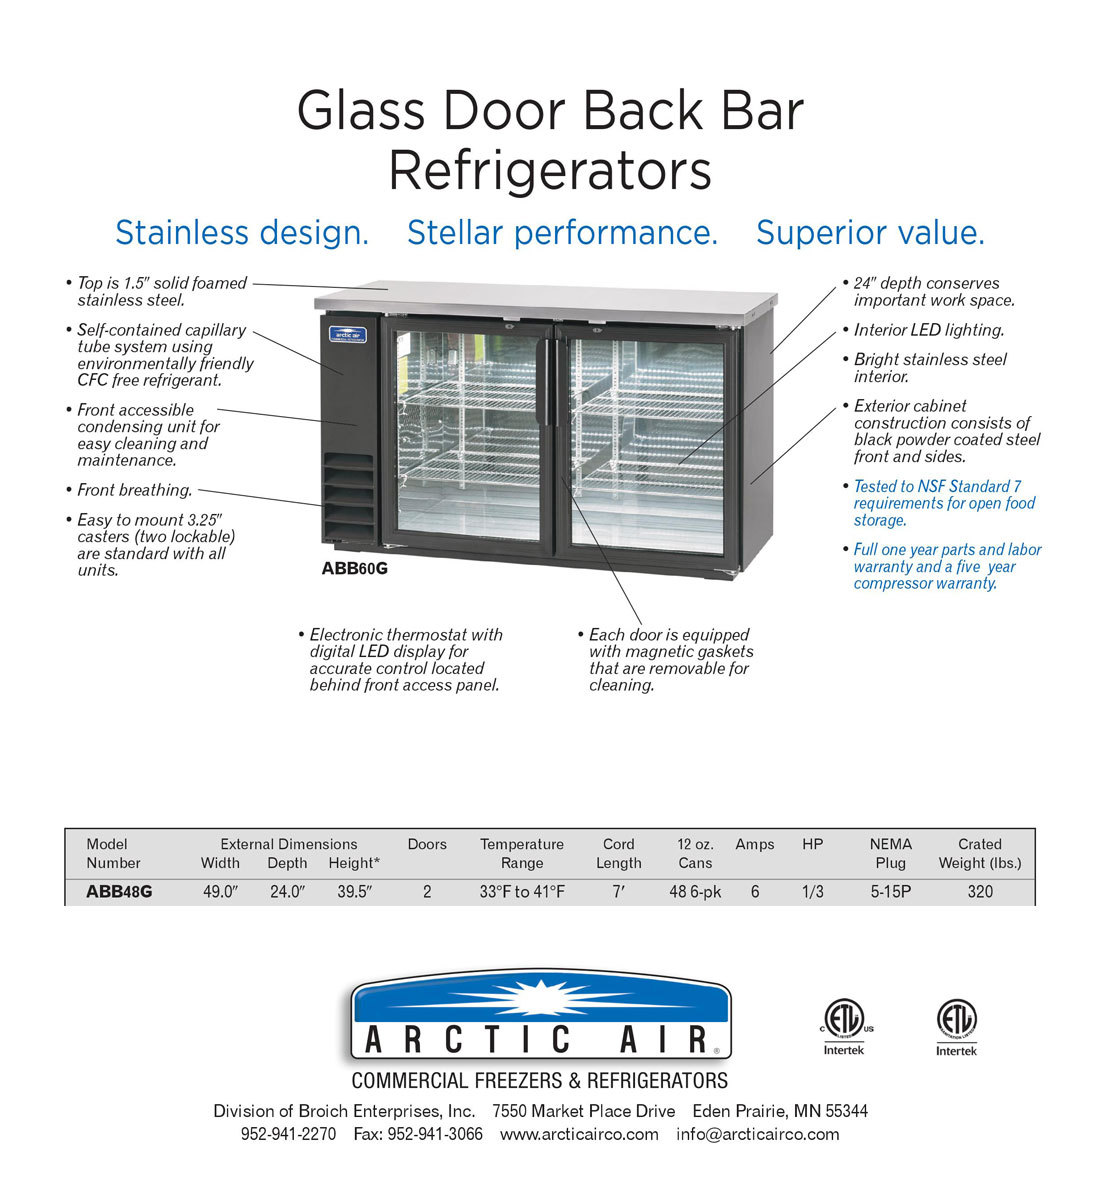 49 Inch Wide Back Bar Refrigerator with 2 Glass Doors and Stainless Steel Top (Arctic Air ABB48G) Specification Image